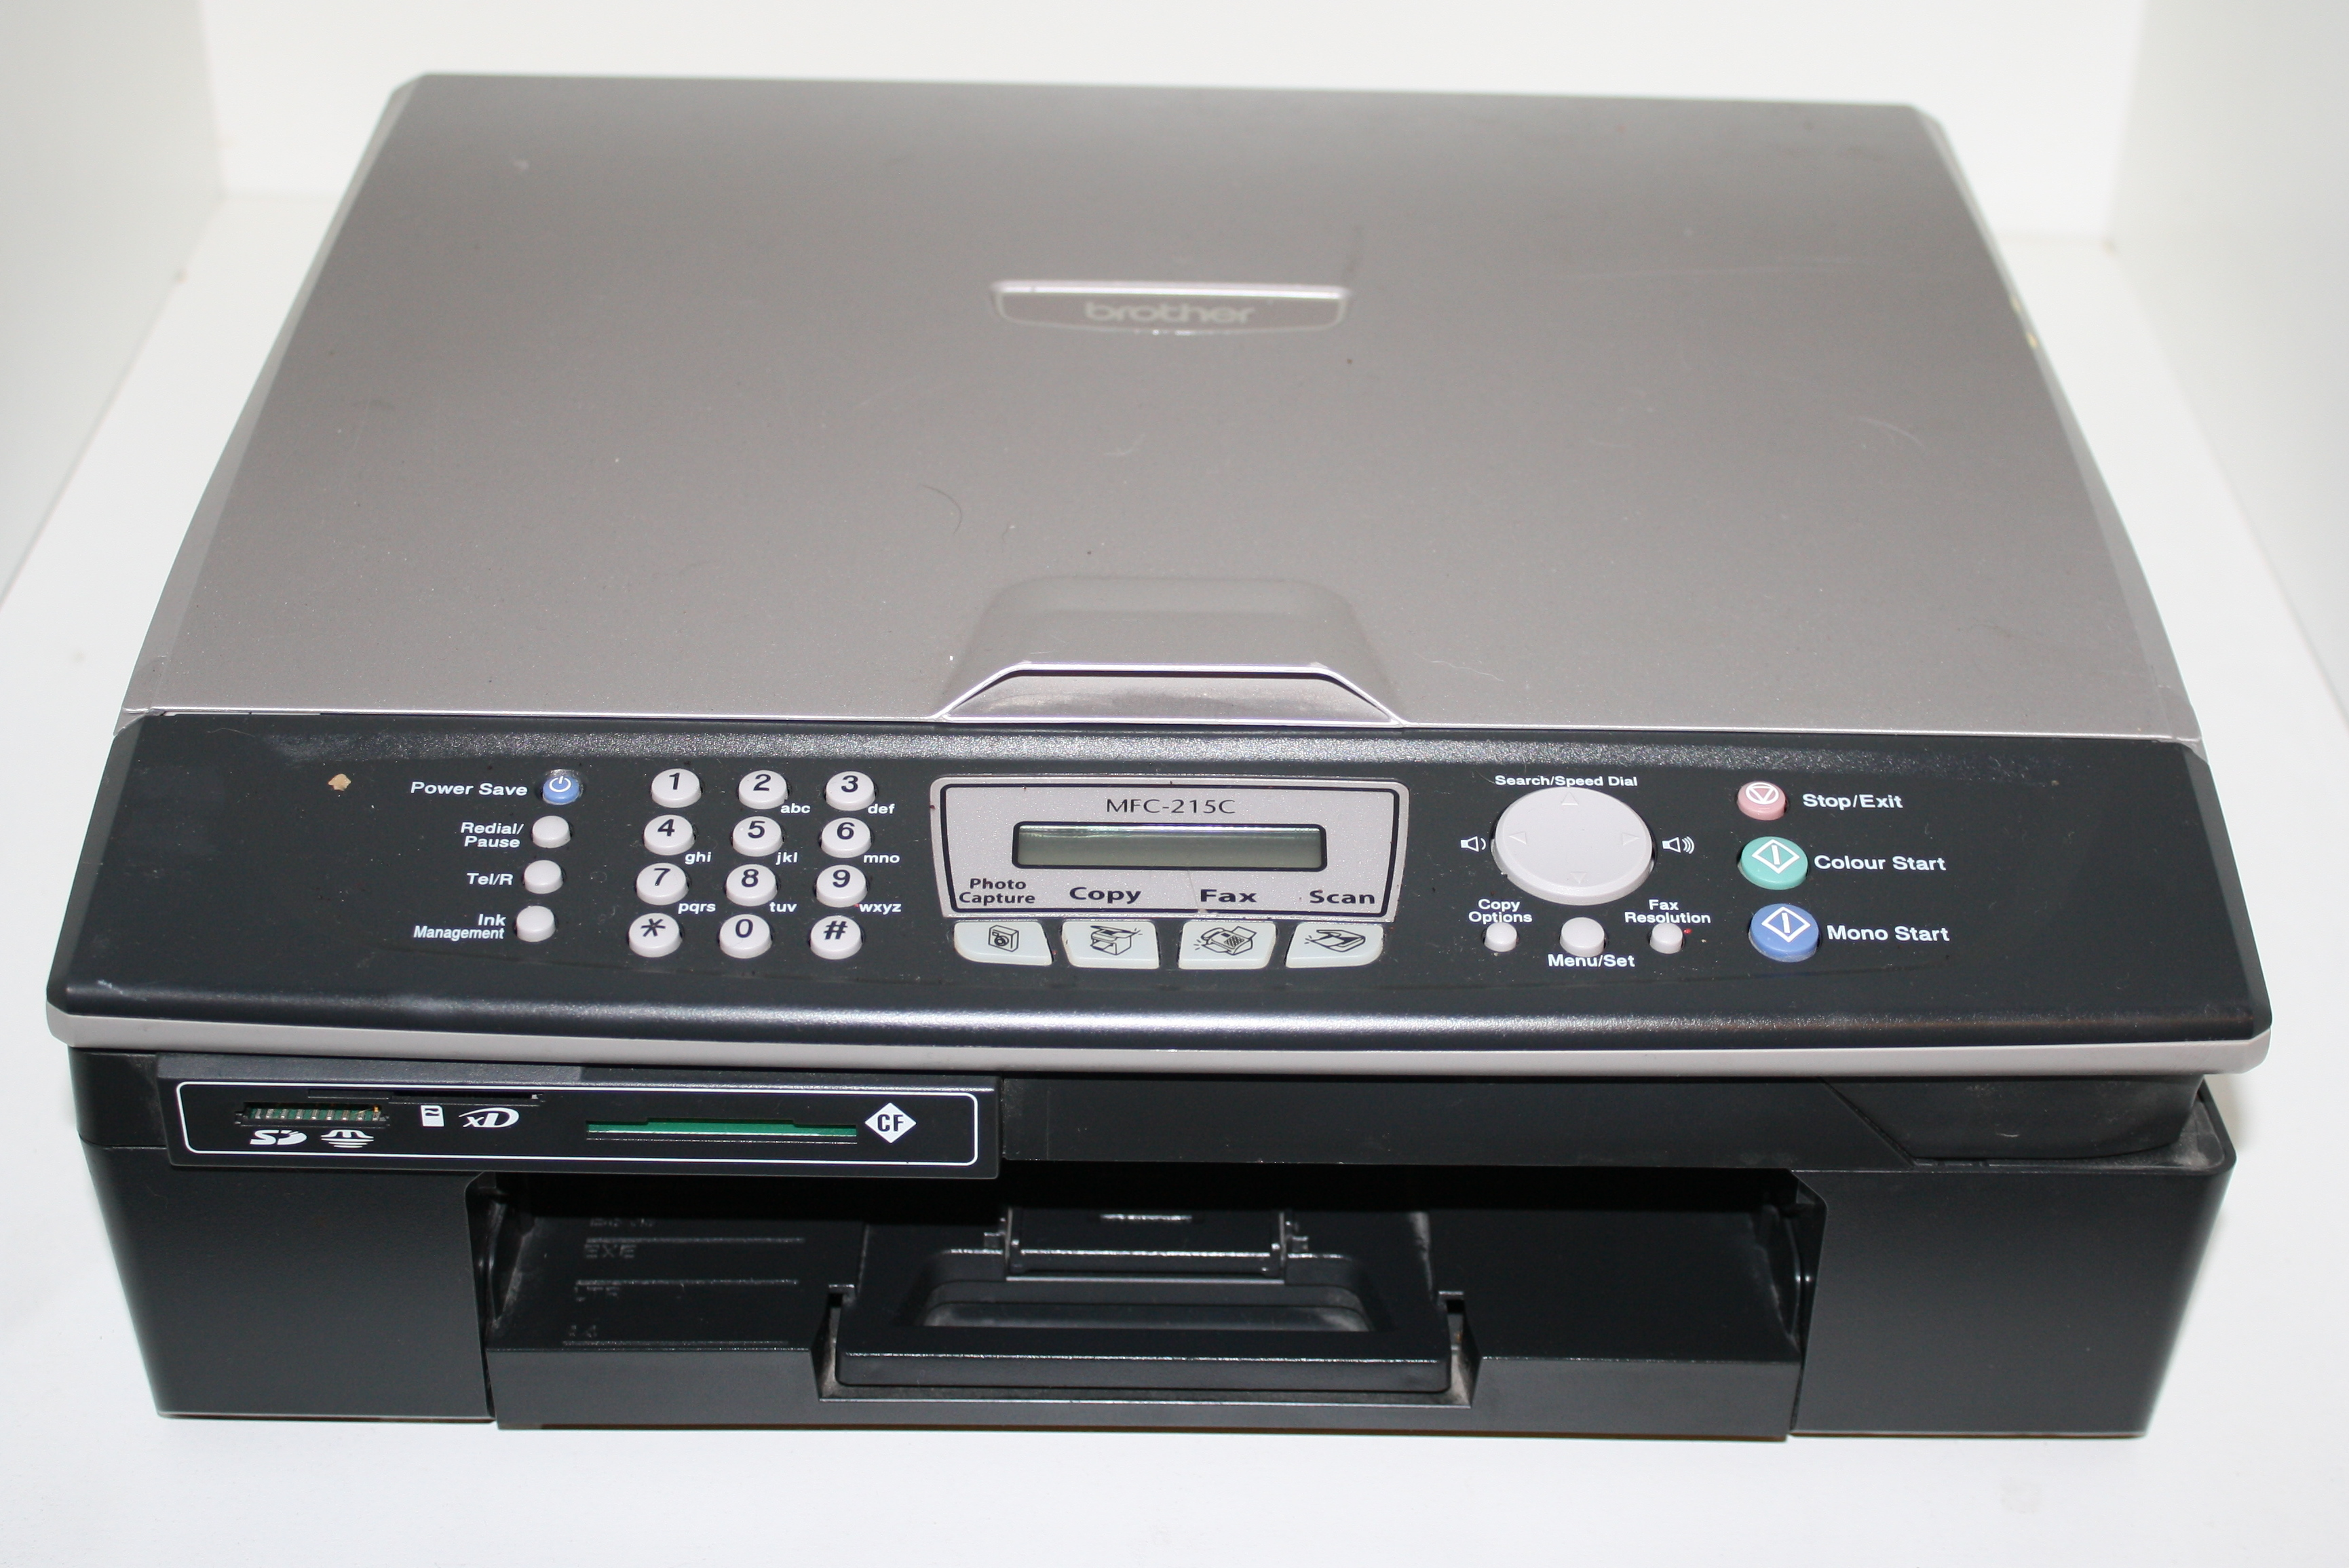 BROTHER MFC 215C DRIVER FOR WINDOWS 7